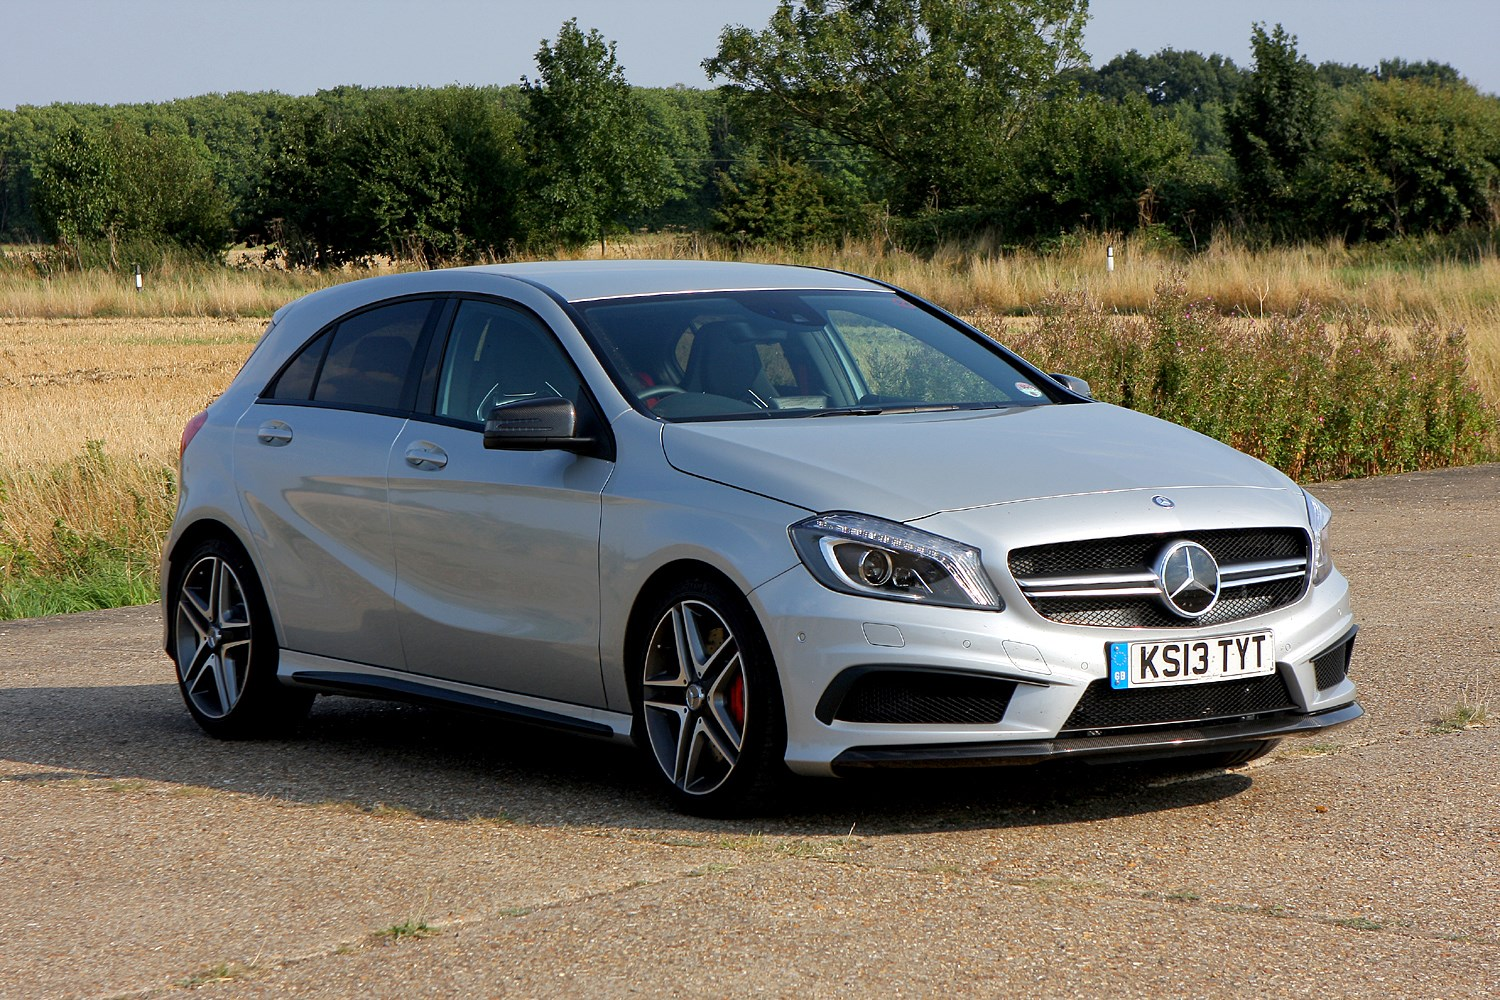 Mercedes benz a class amg 2013 photos parkers for How much is a mercedes benz c class